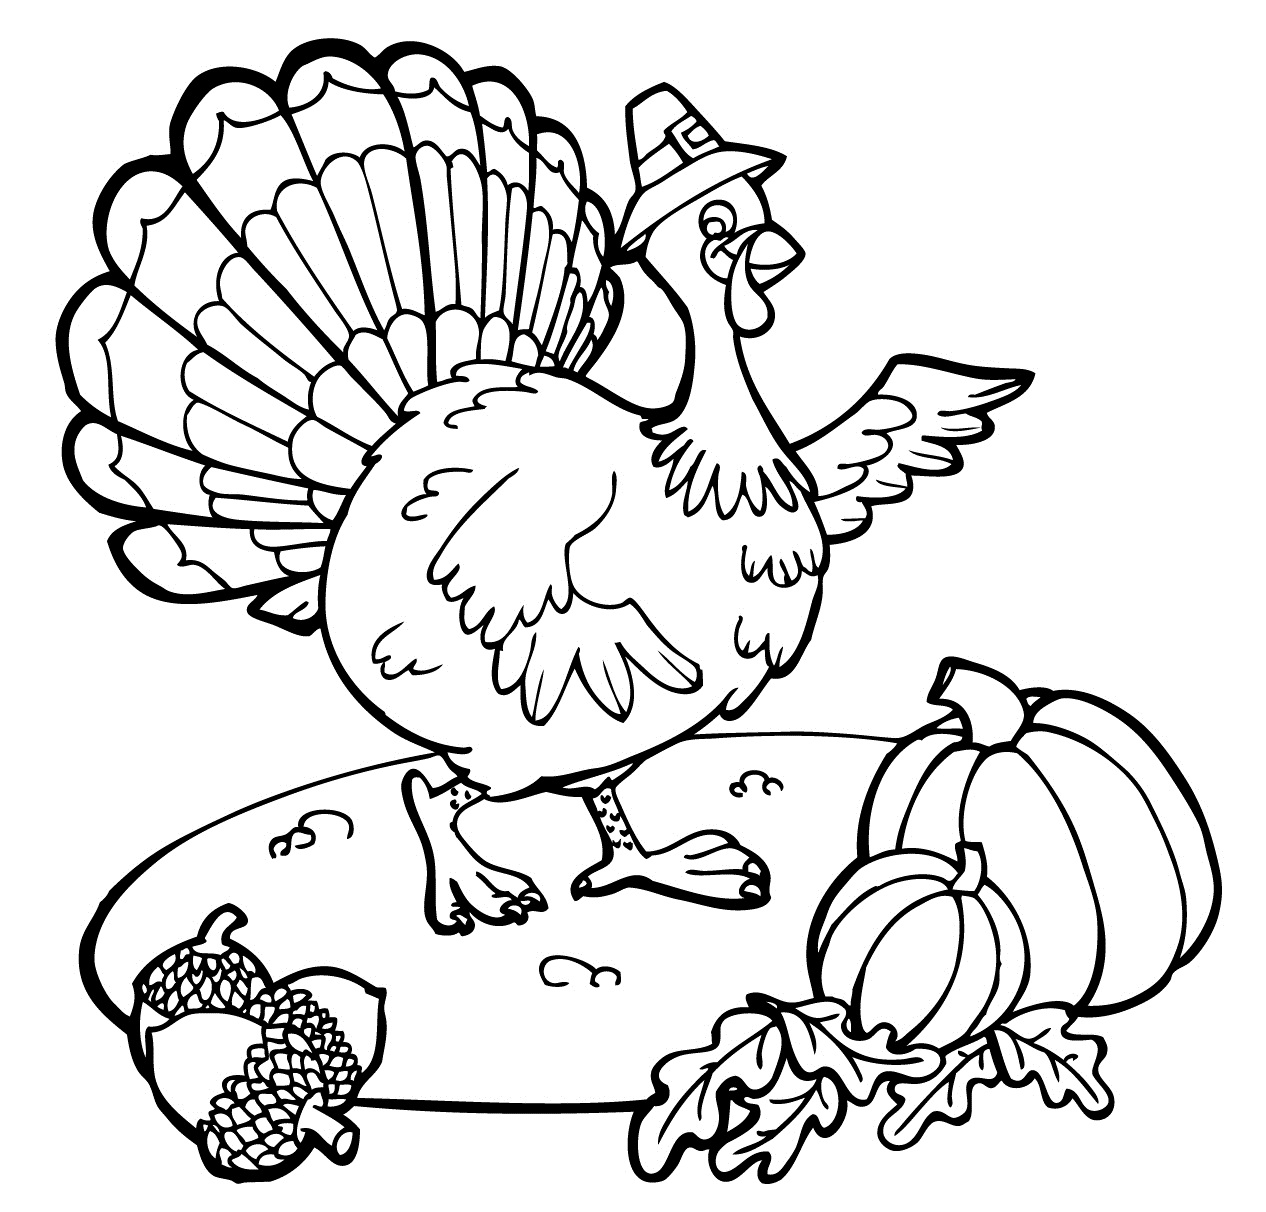 1266x1212 Thanksgiving Coloring Pages For Kids Printable Free Dringrames